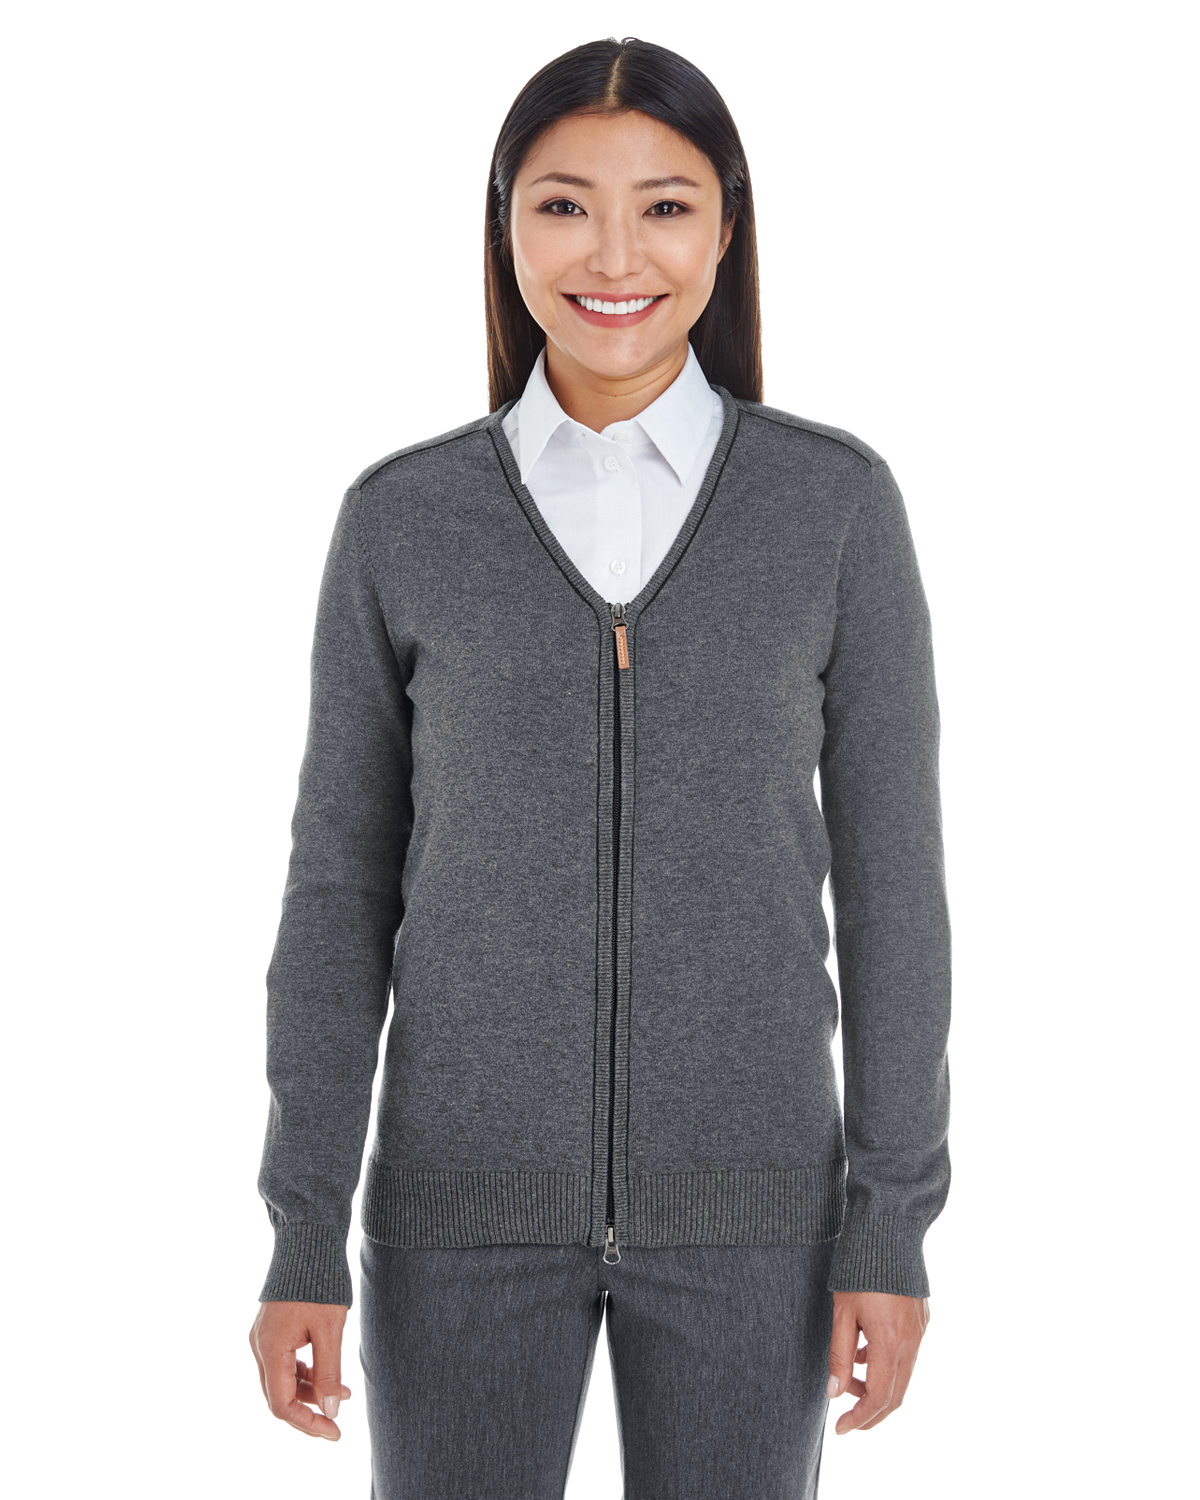 Devon & Jones - DG478W Ladies' Manchester Fully-Fashioned Full-zip Sweater, Pensacola, Embroidery, Screen Printing, Logo Masters International